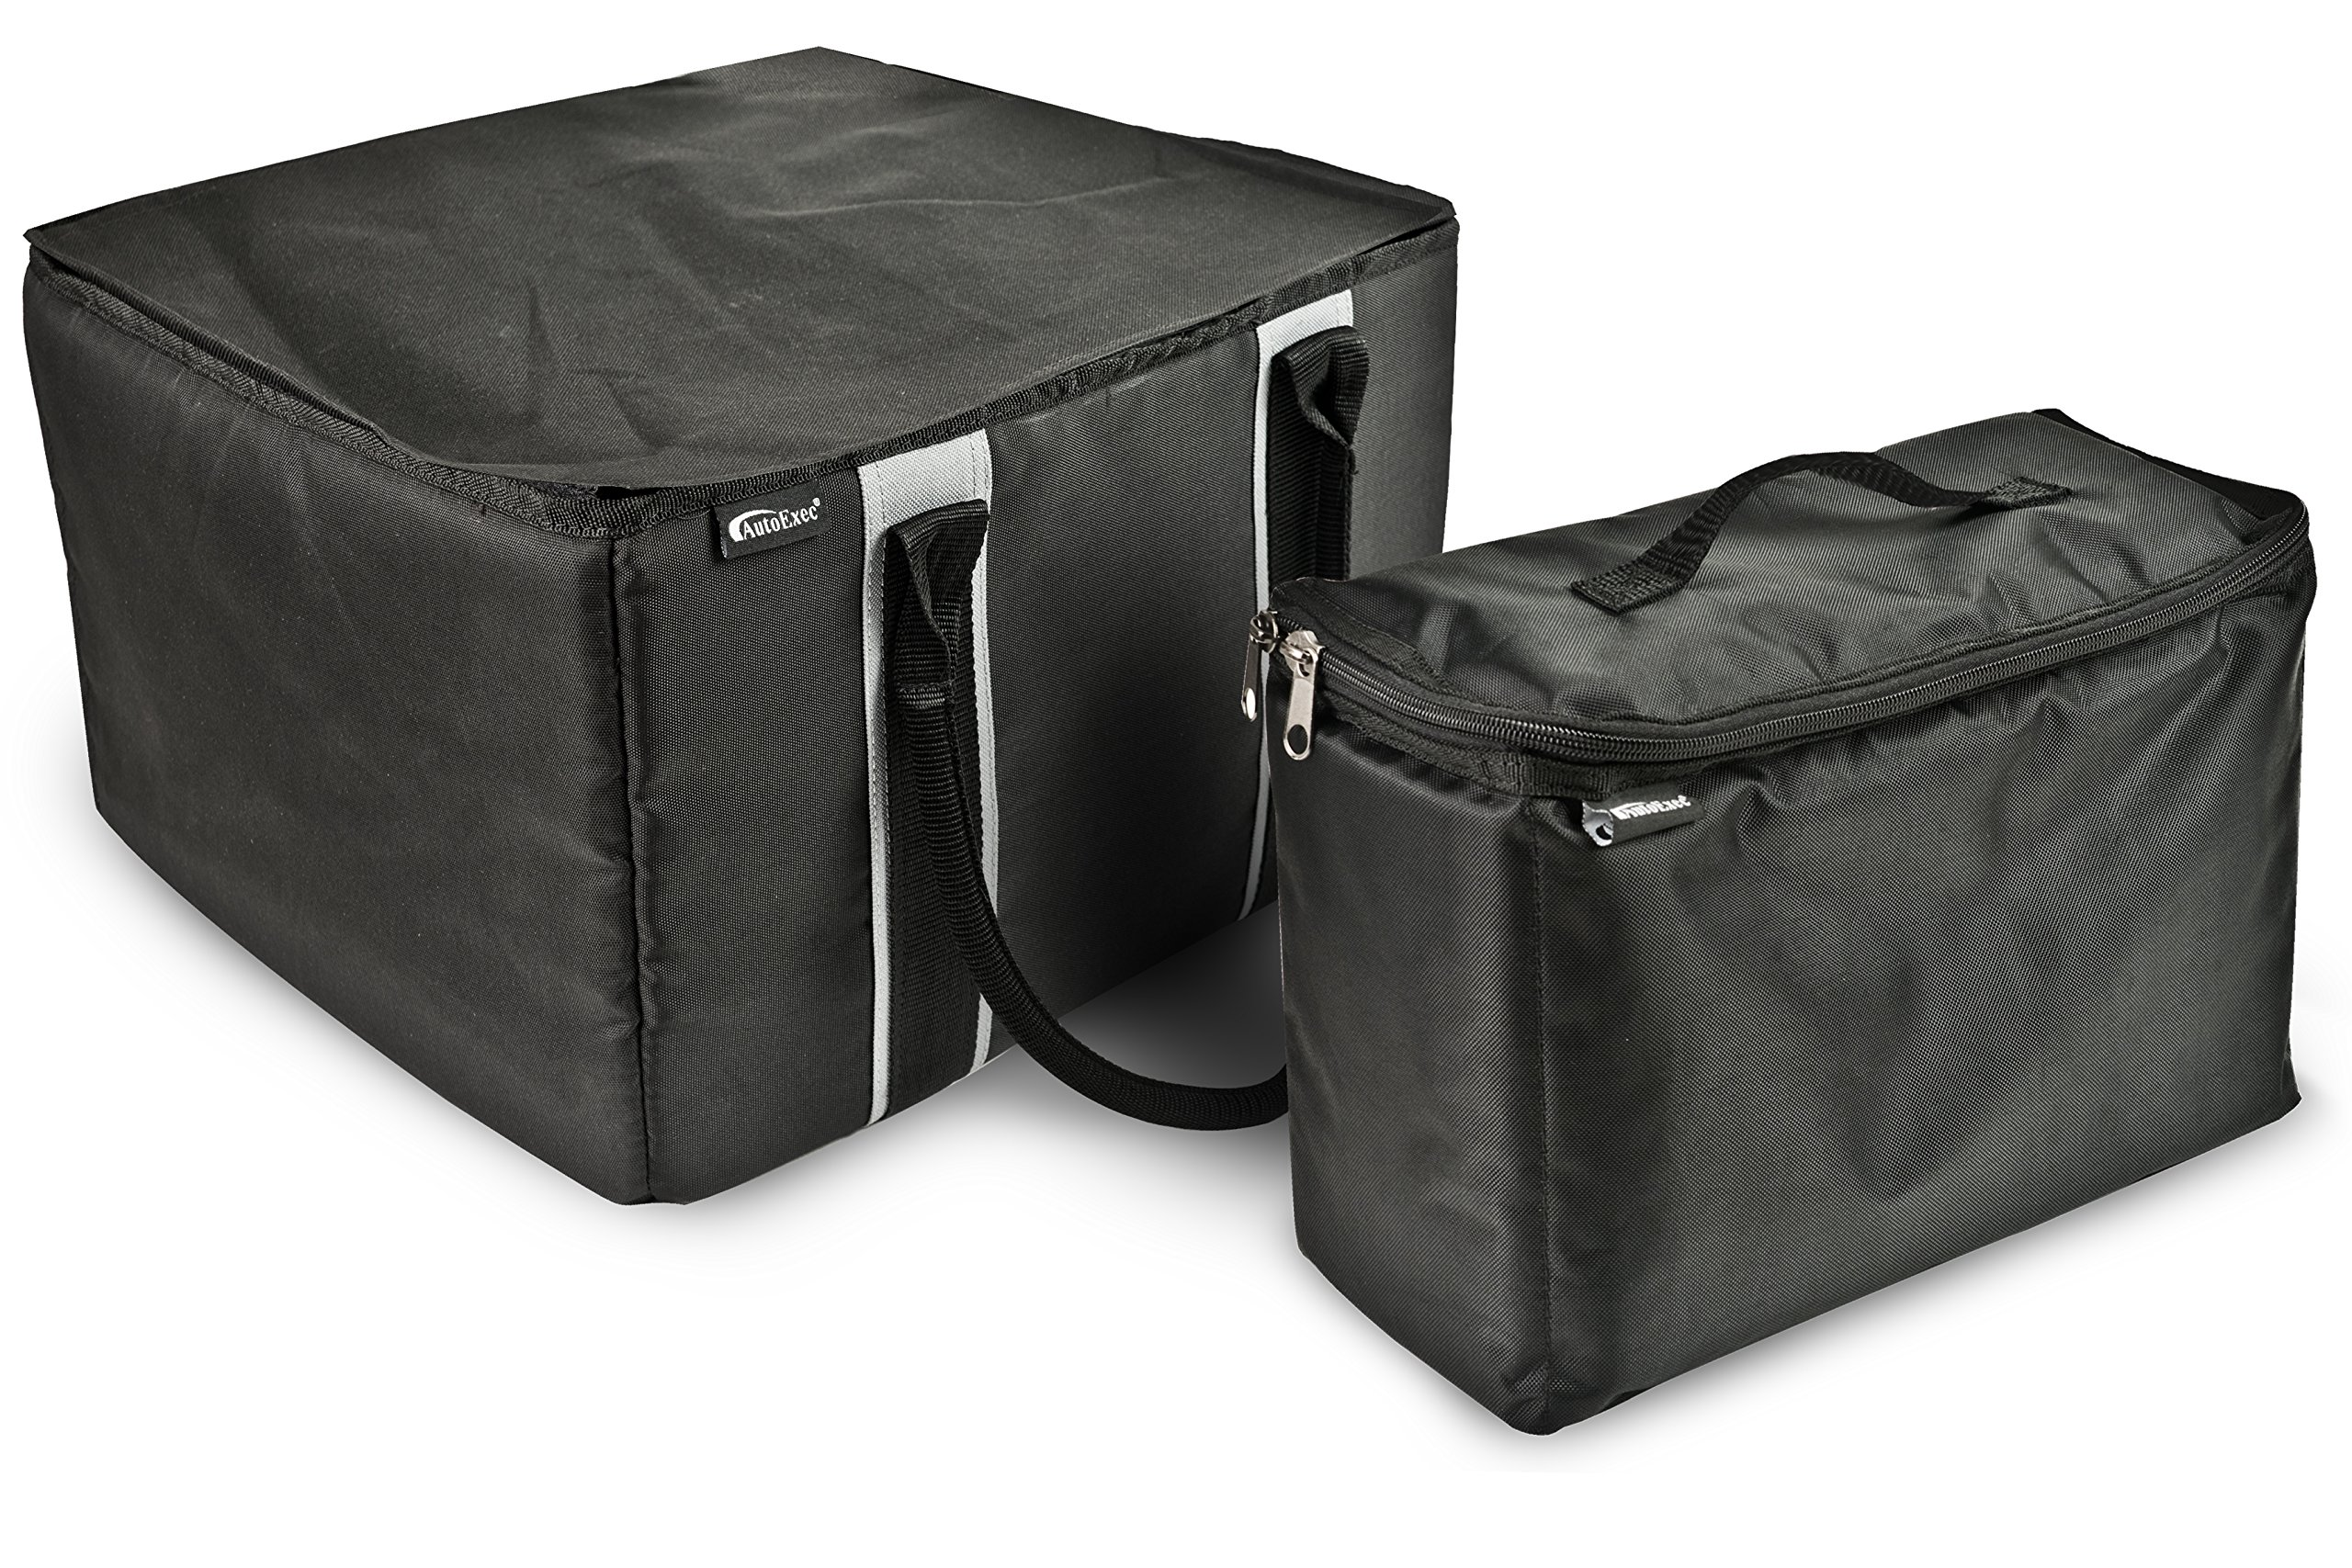 AutoExec AETote-07 Black/Grey File Tote with One Cooler